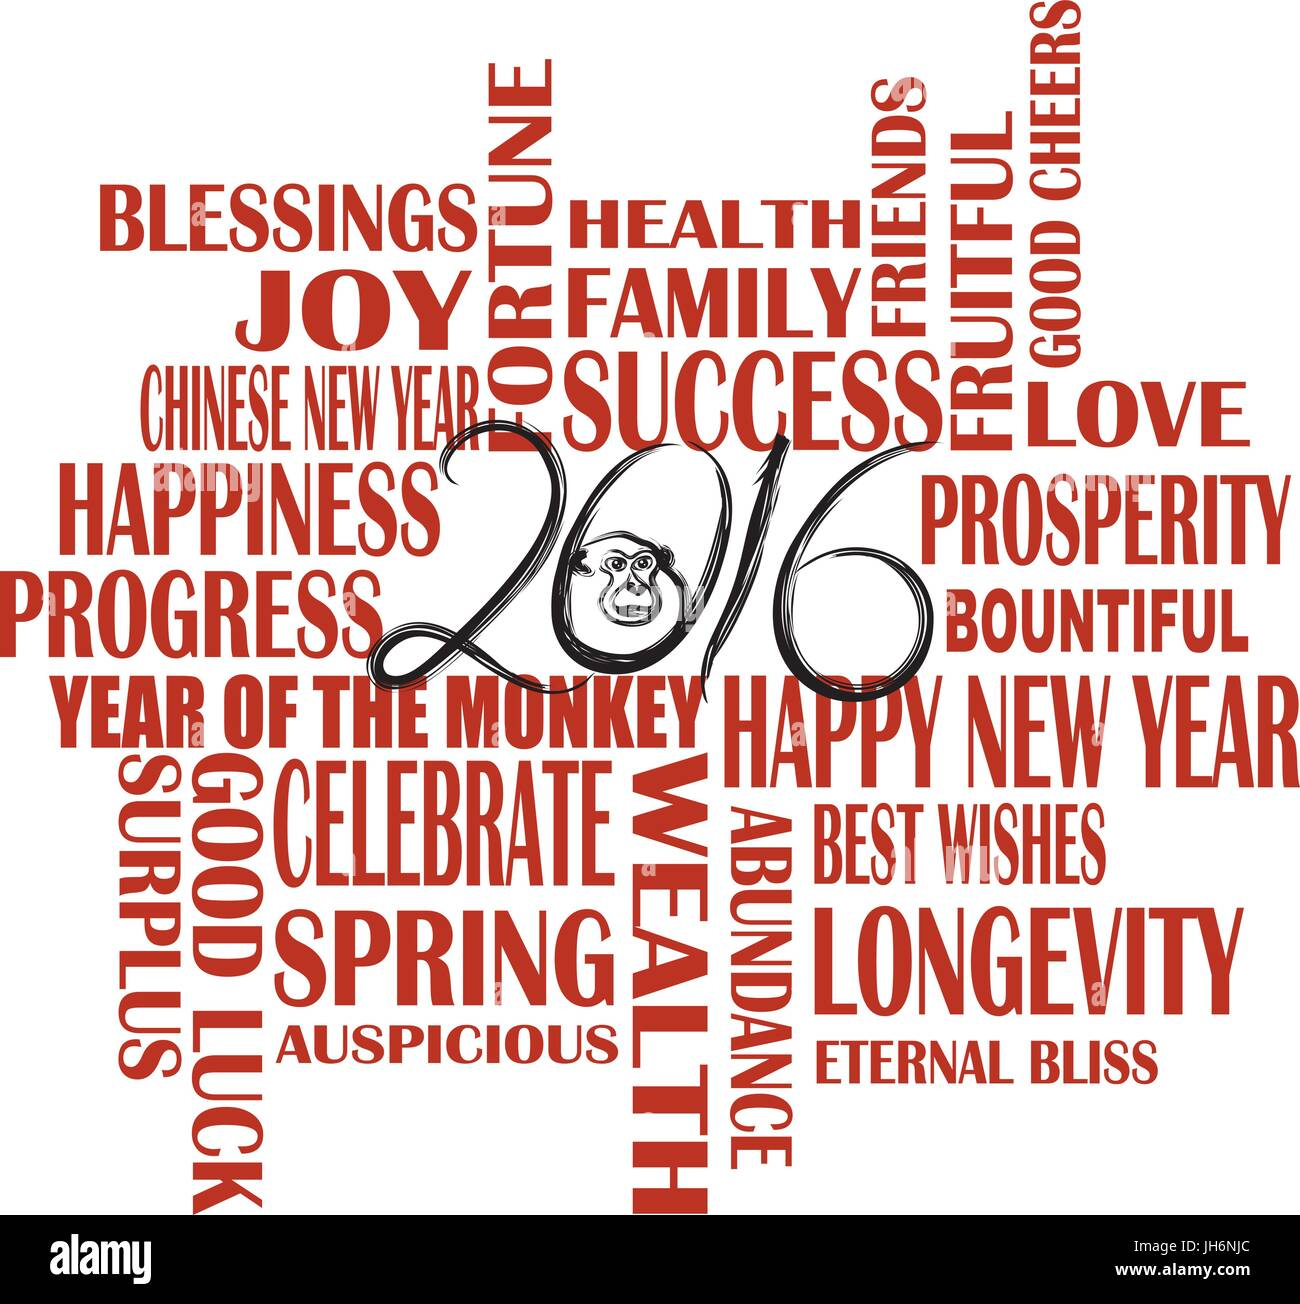 2016 Chinese Lunar New Year English Greetings Text Wishing Health